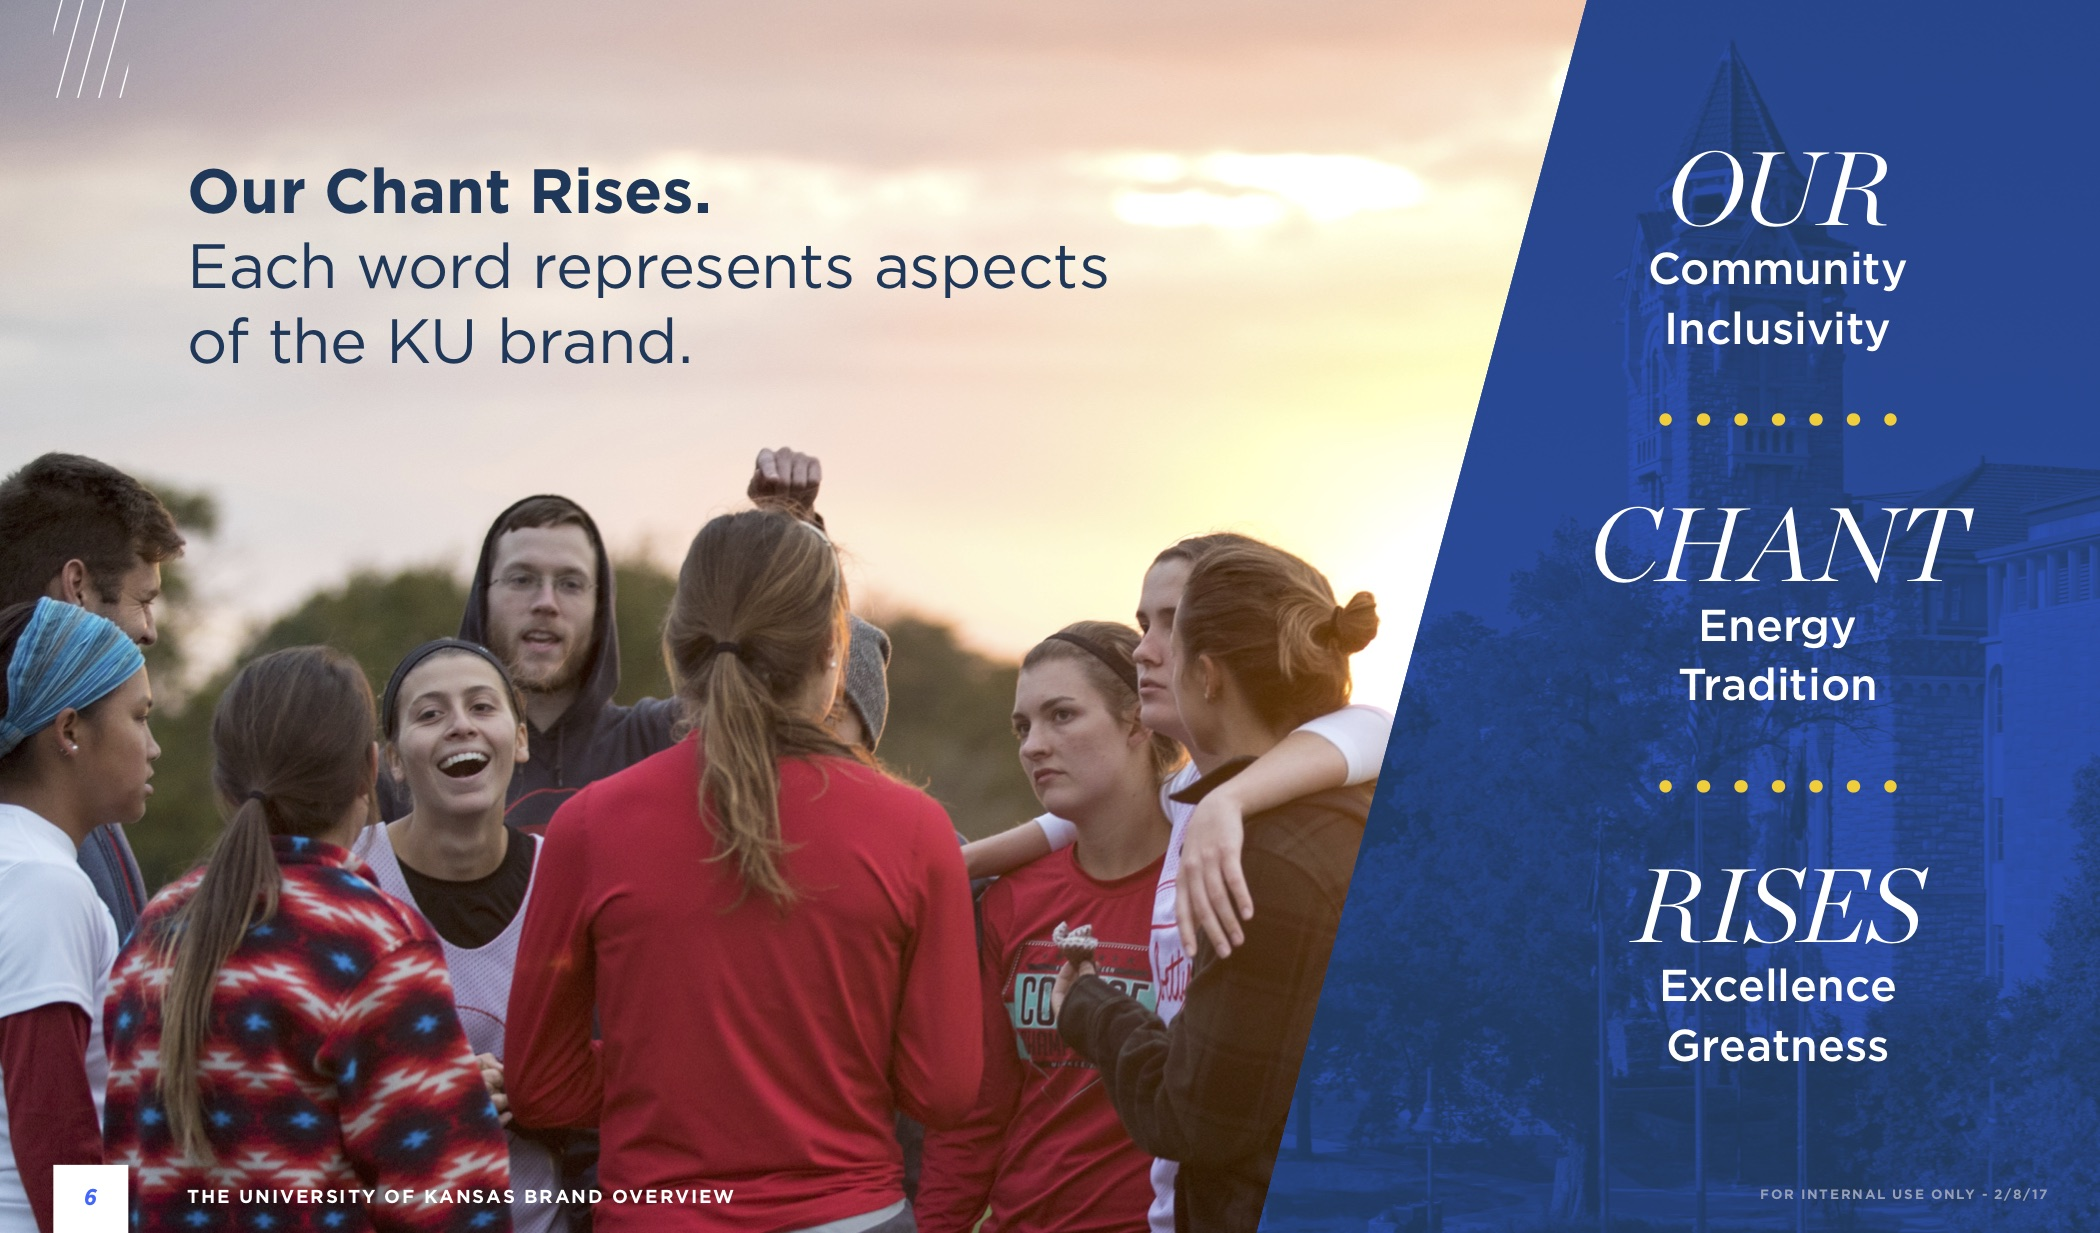 KU Brand book spread - Our Chant Rises